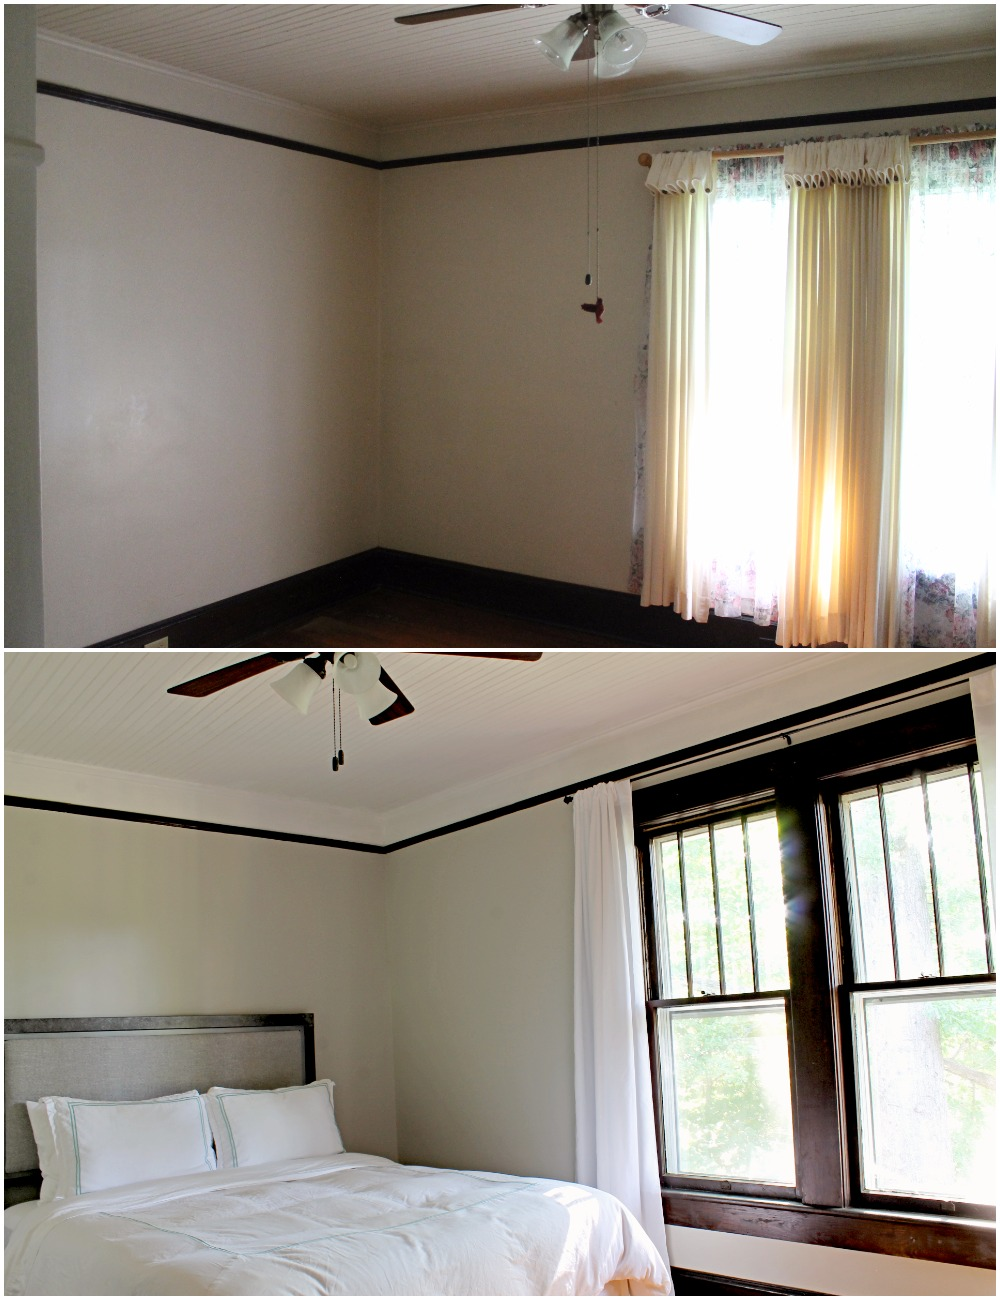 Avenue House (12).jpgHouse Flipping Before and Afters - Bedroom Staging Ideas, Wood Trim Paint Colors - Sherwin Williams Repose Gray 13